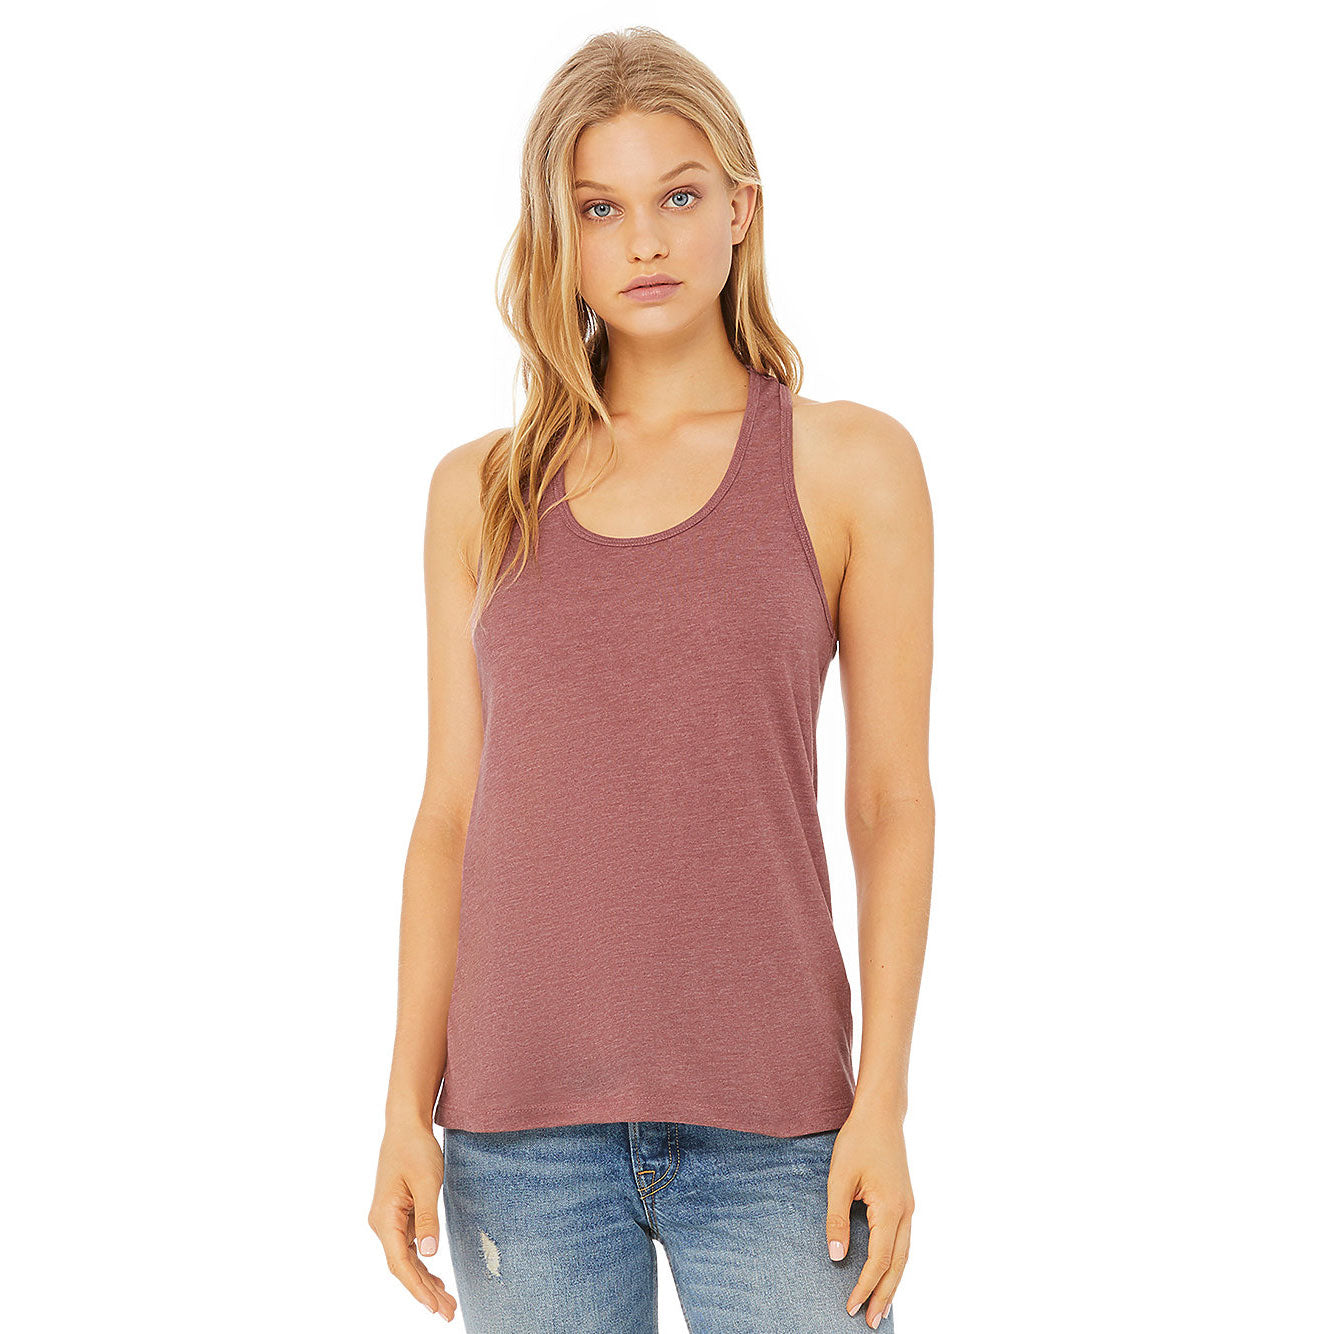 SPORTY RACER BACK TANK